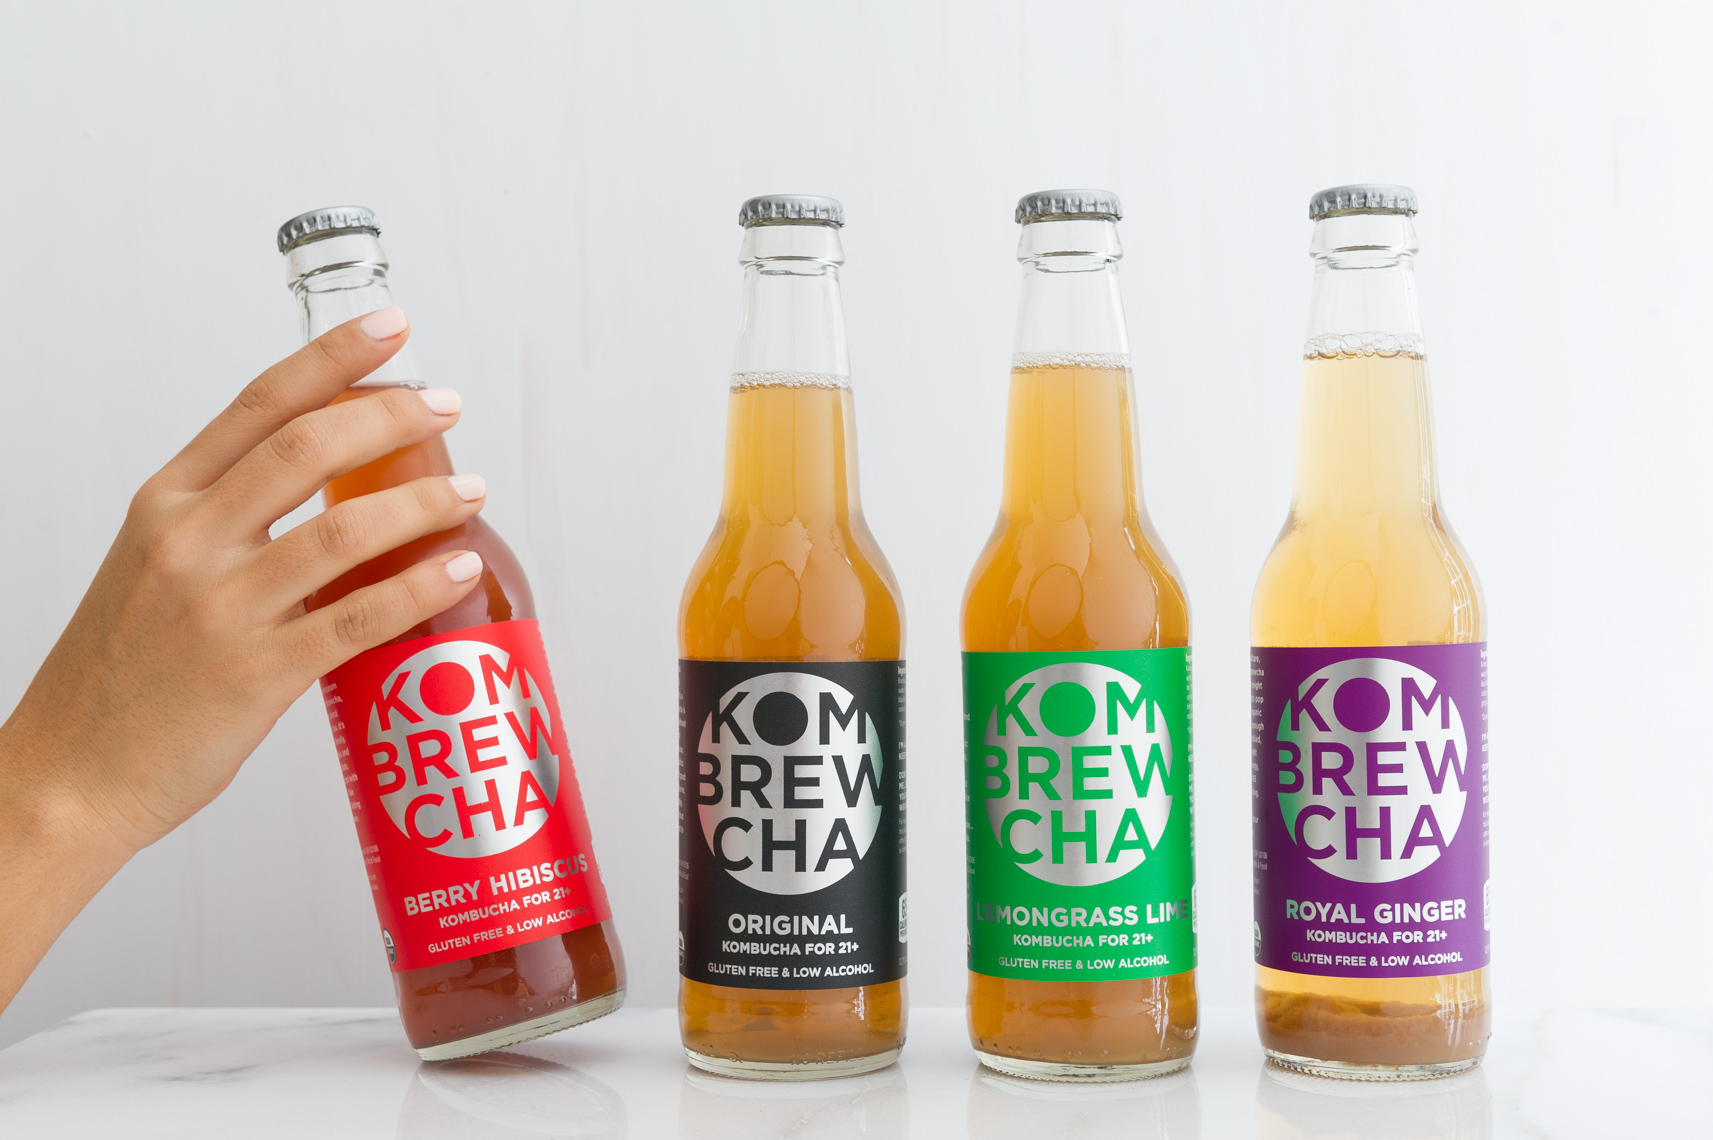 NYC Commercial Food Photographer - Kombrewcha